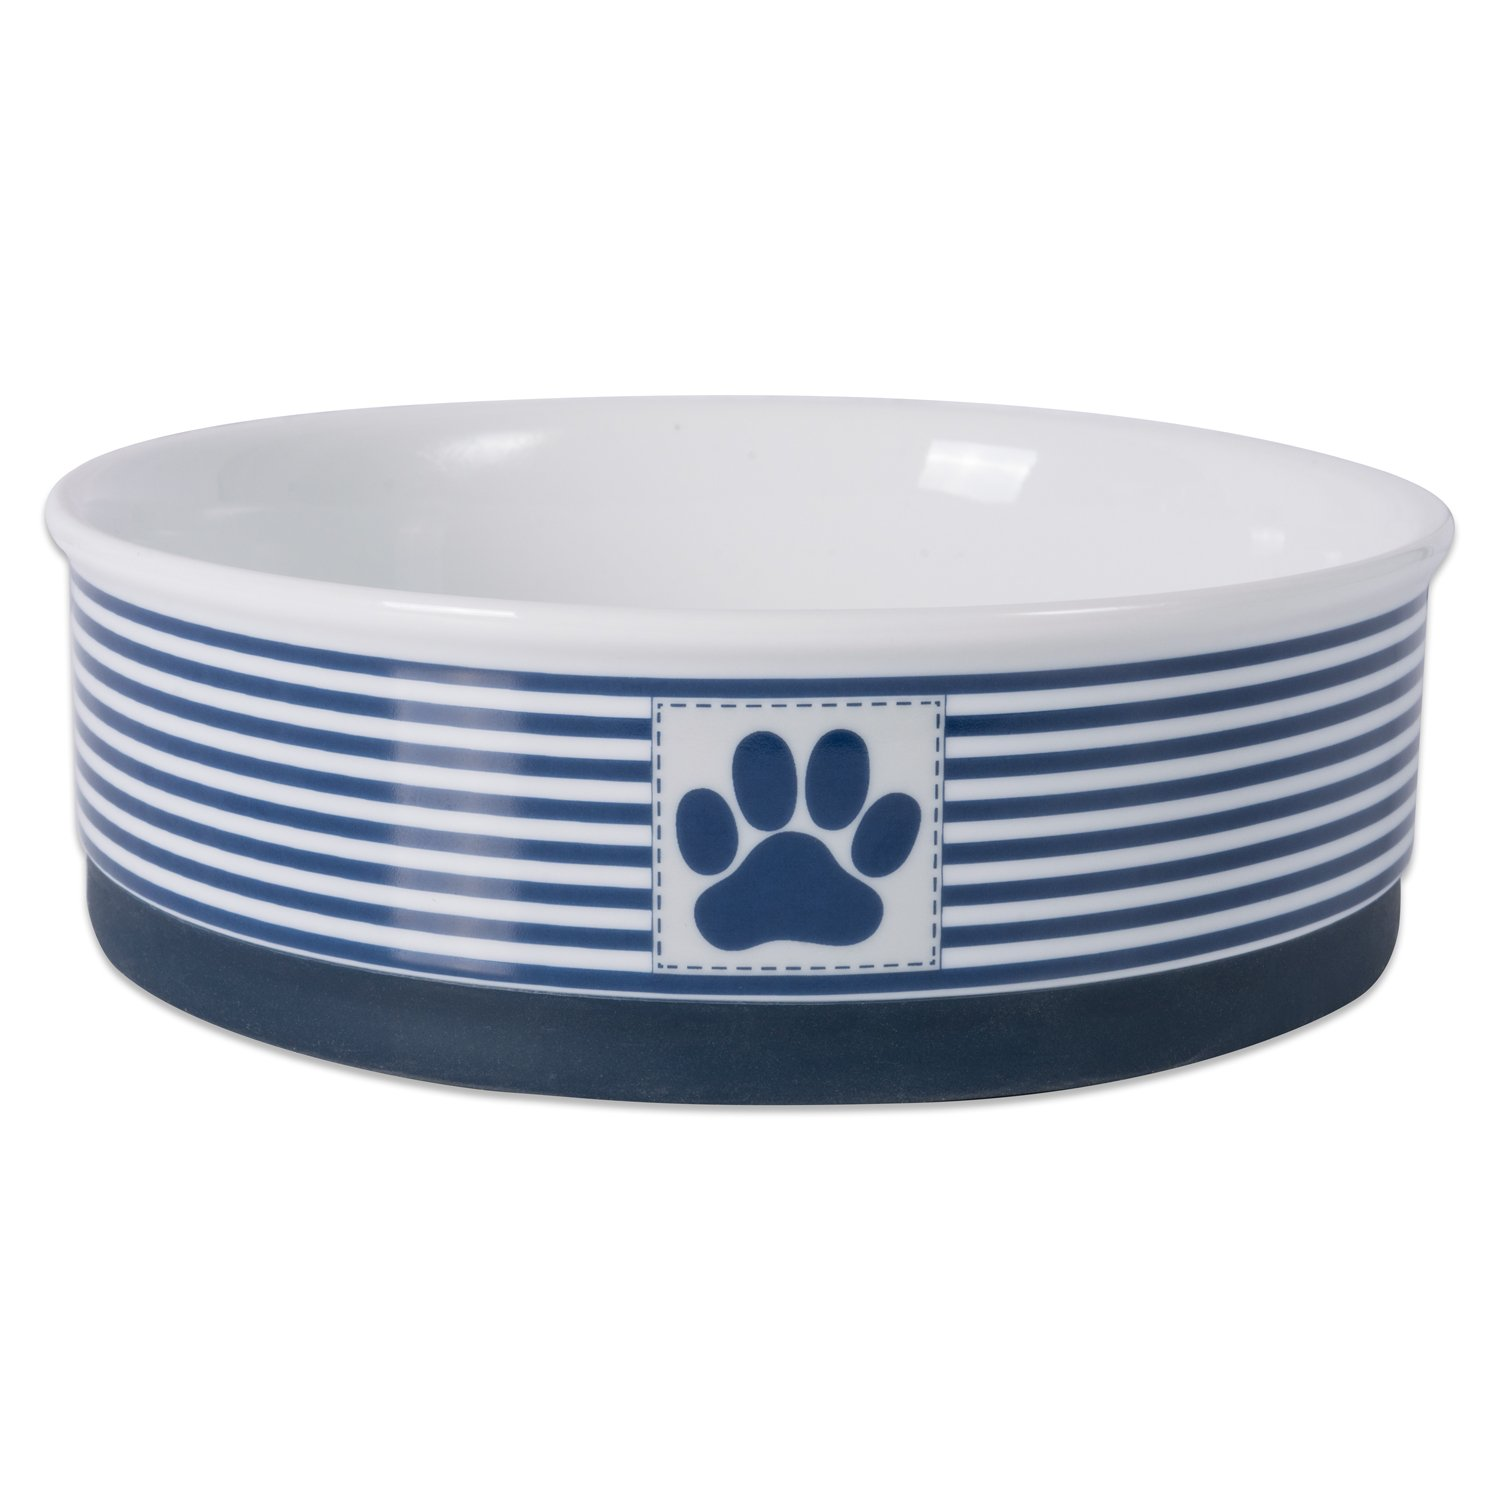 DII Bone Dry Paw Patch & Stripes Ceramic Pet Bowl for Food & Water with Non-Skid Silicone Rim for Dogs and Cats (Large 7.5  Dia x 4 H) Nautical bluee